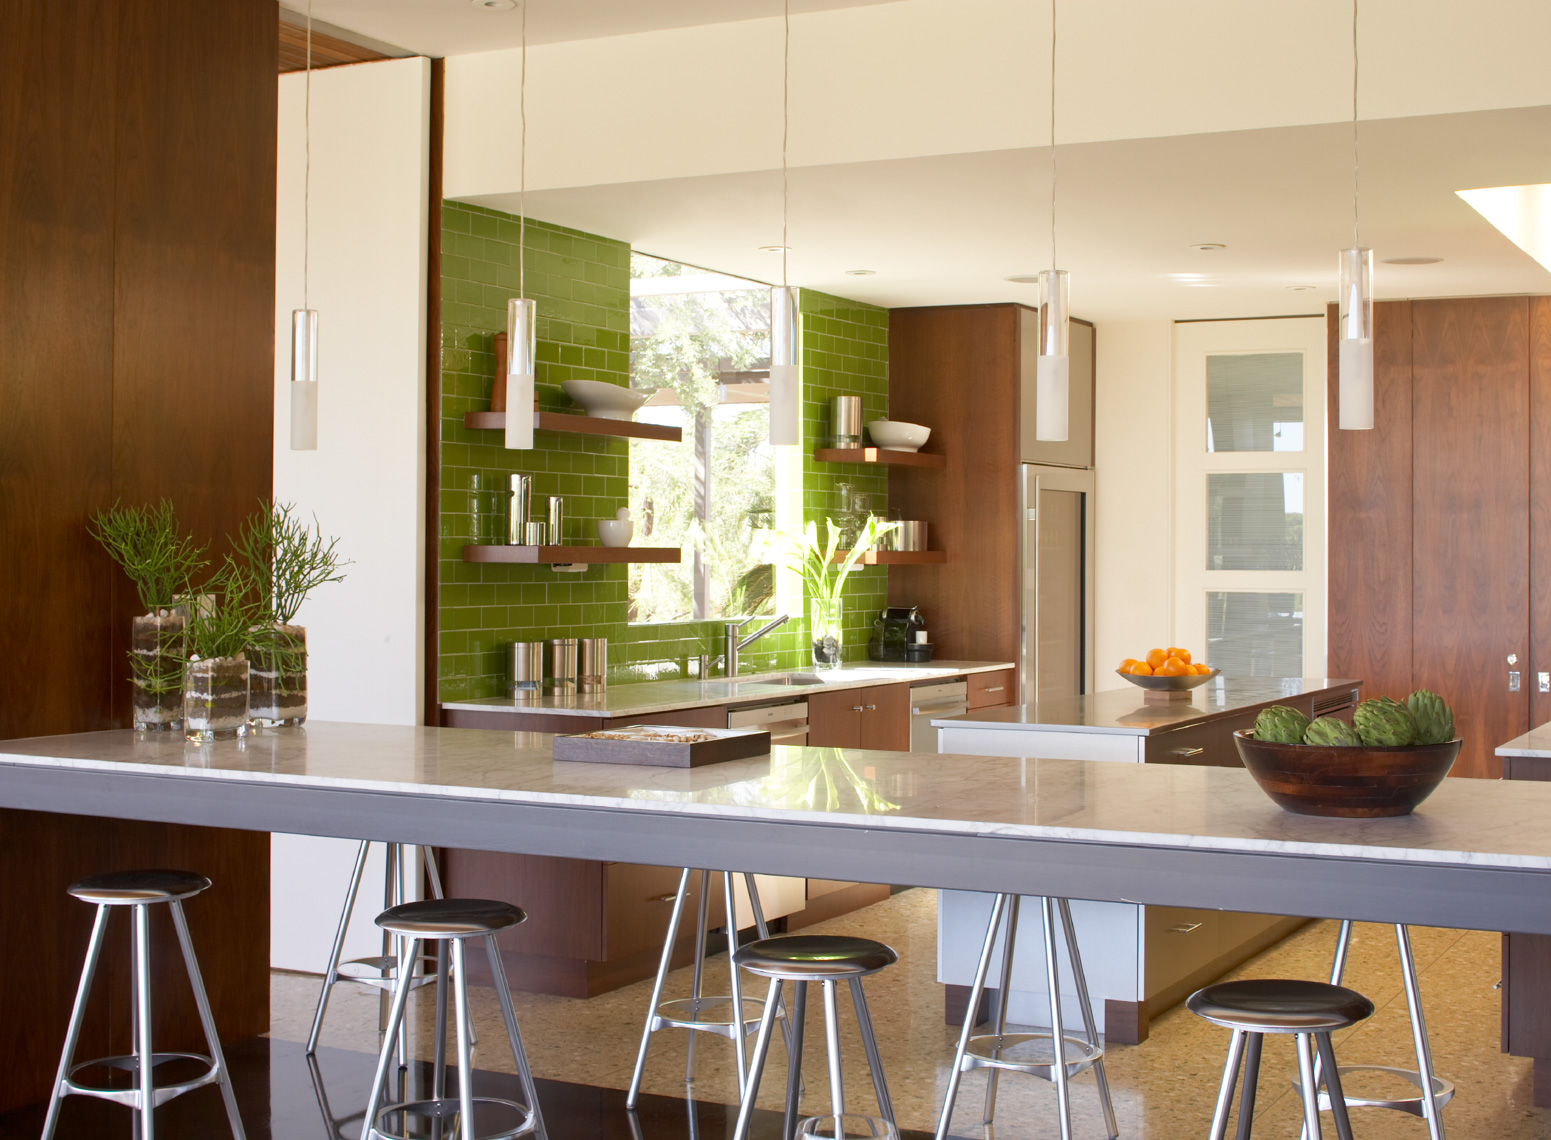 green-tiled kitchen interior with long white counter and stools San Francisco interior photographer